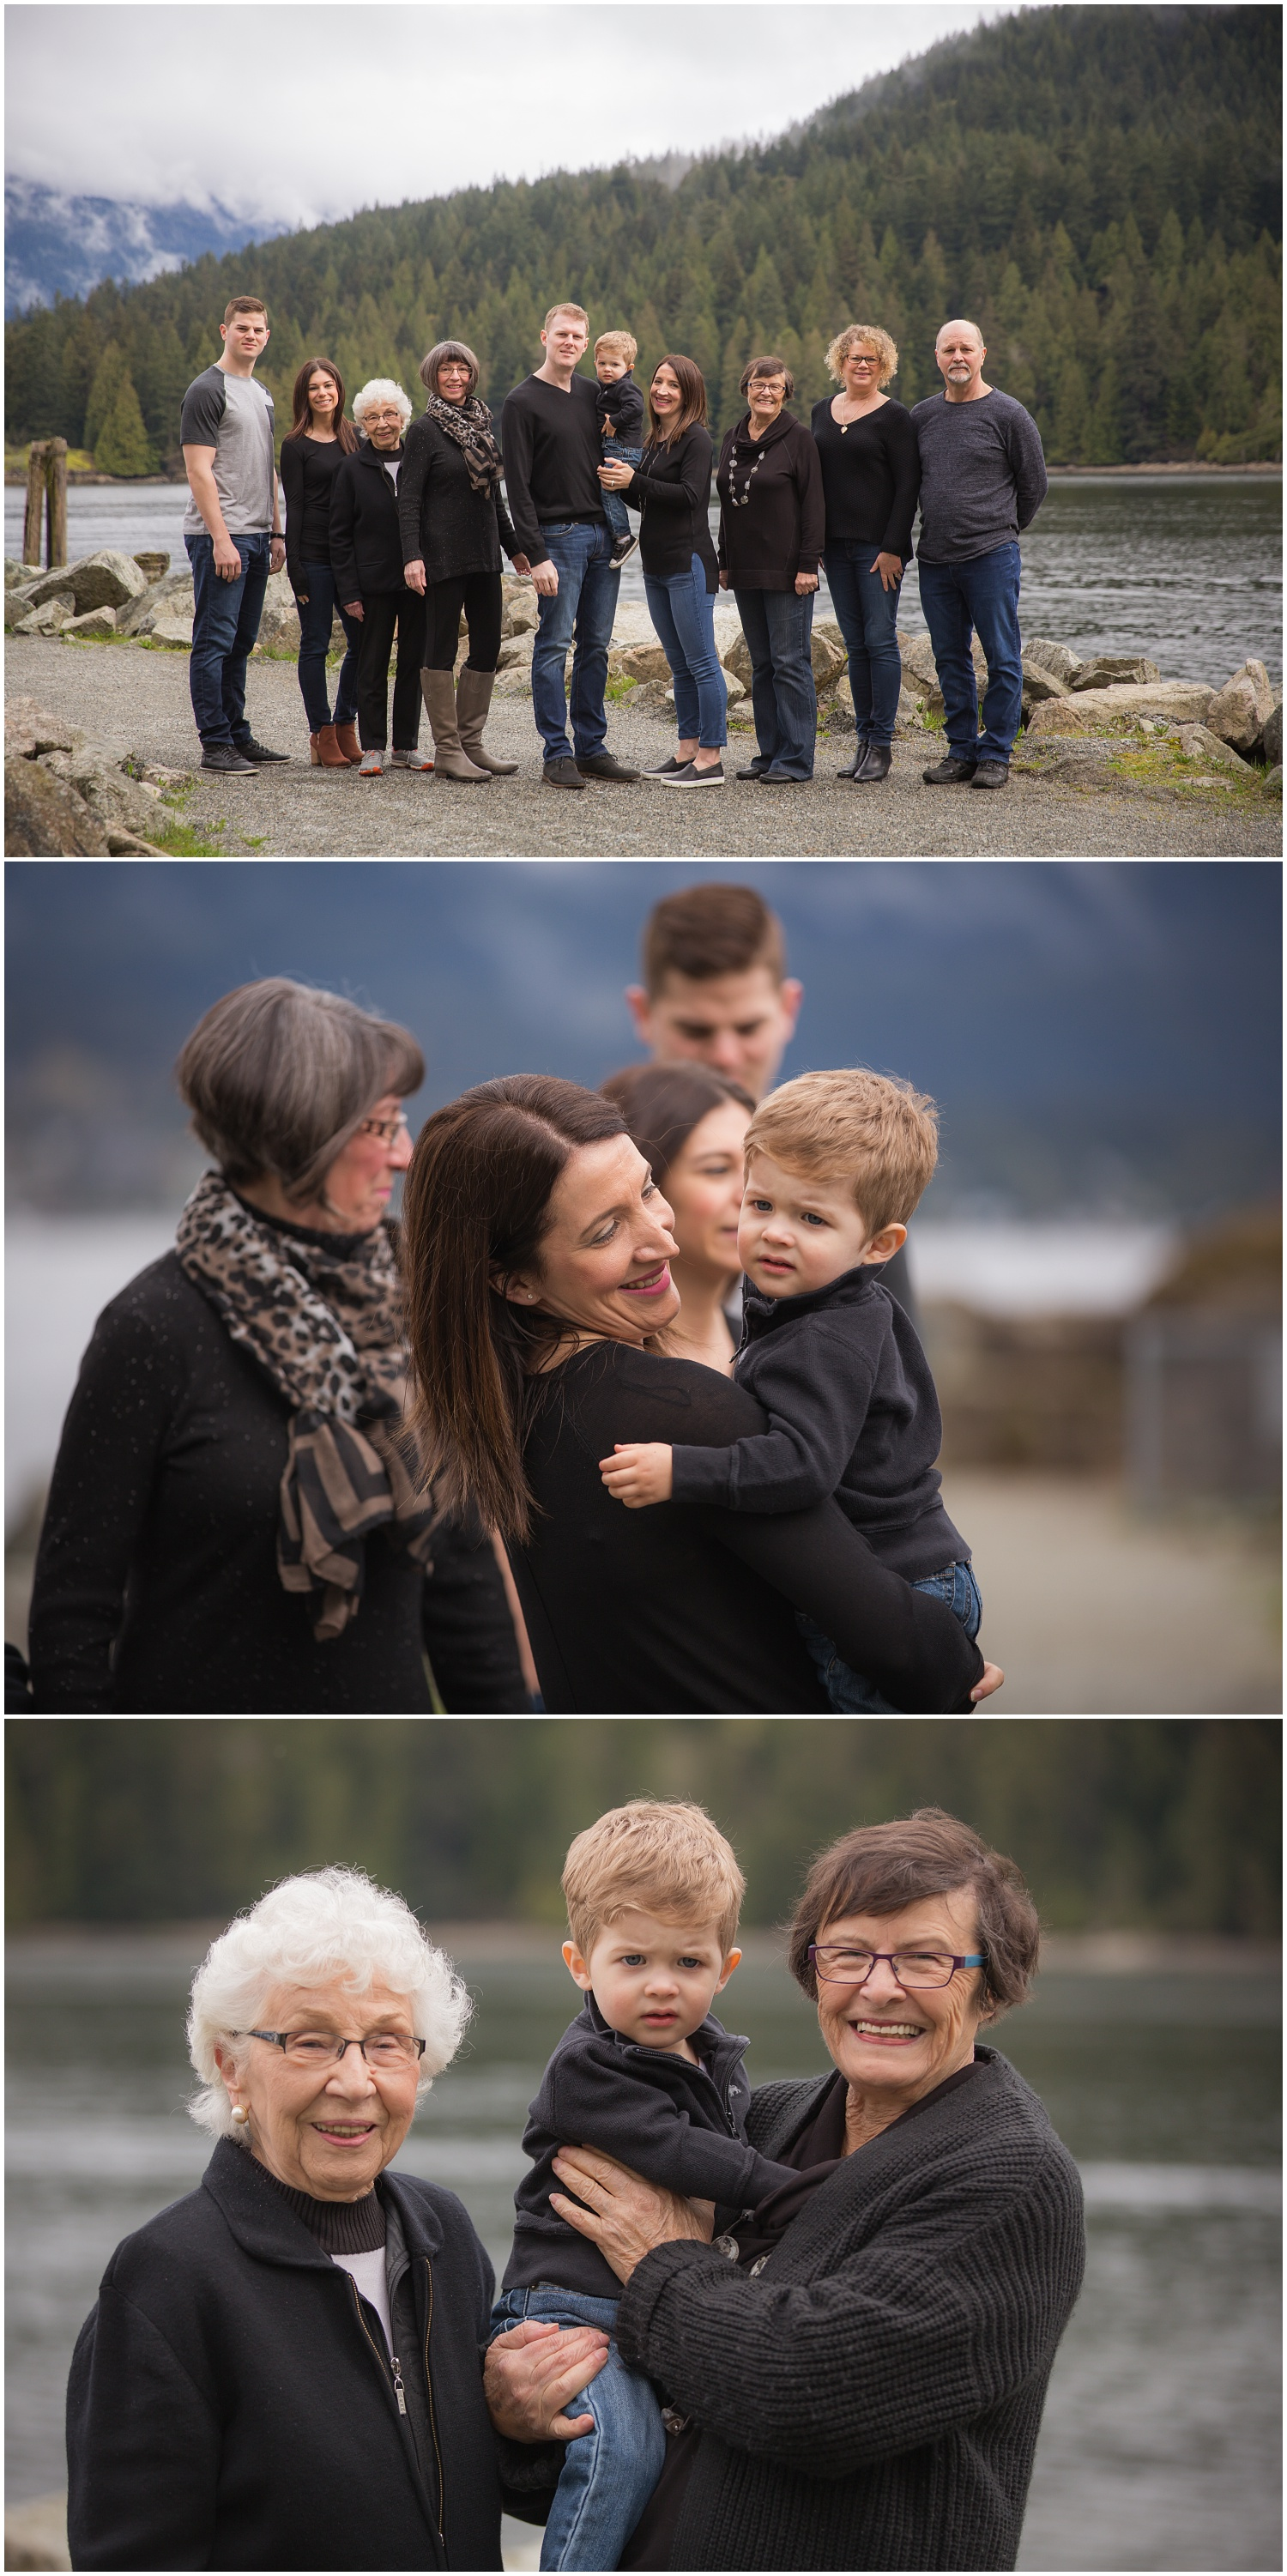 Amazing Day Photography - Barnet Marie Park Family Session - Burnaby Family Session - Burnaby Family Photographer (2).jpg